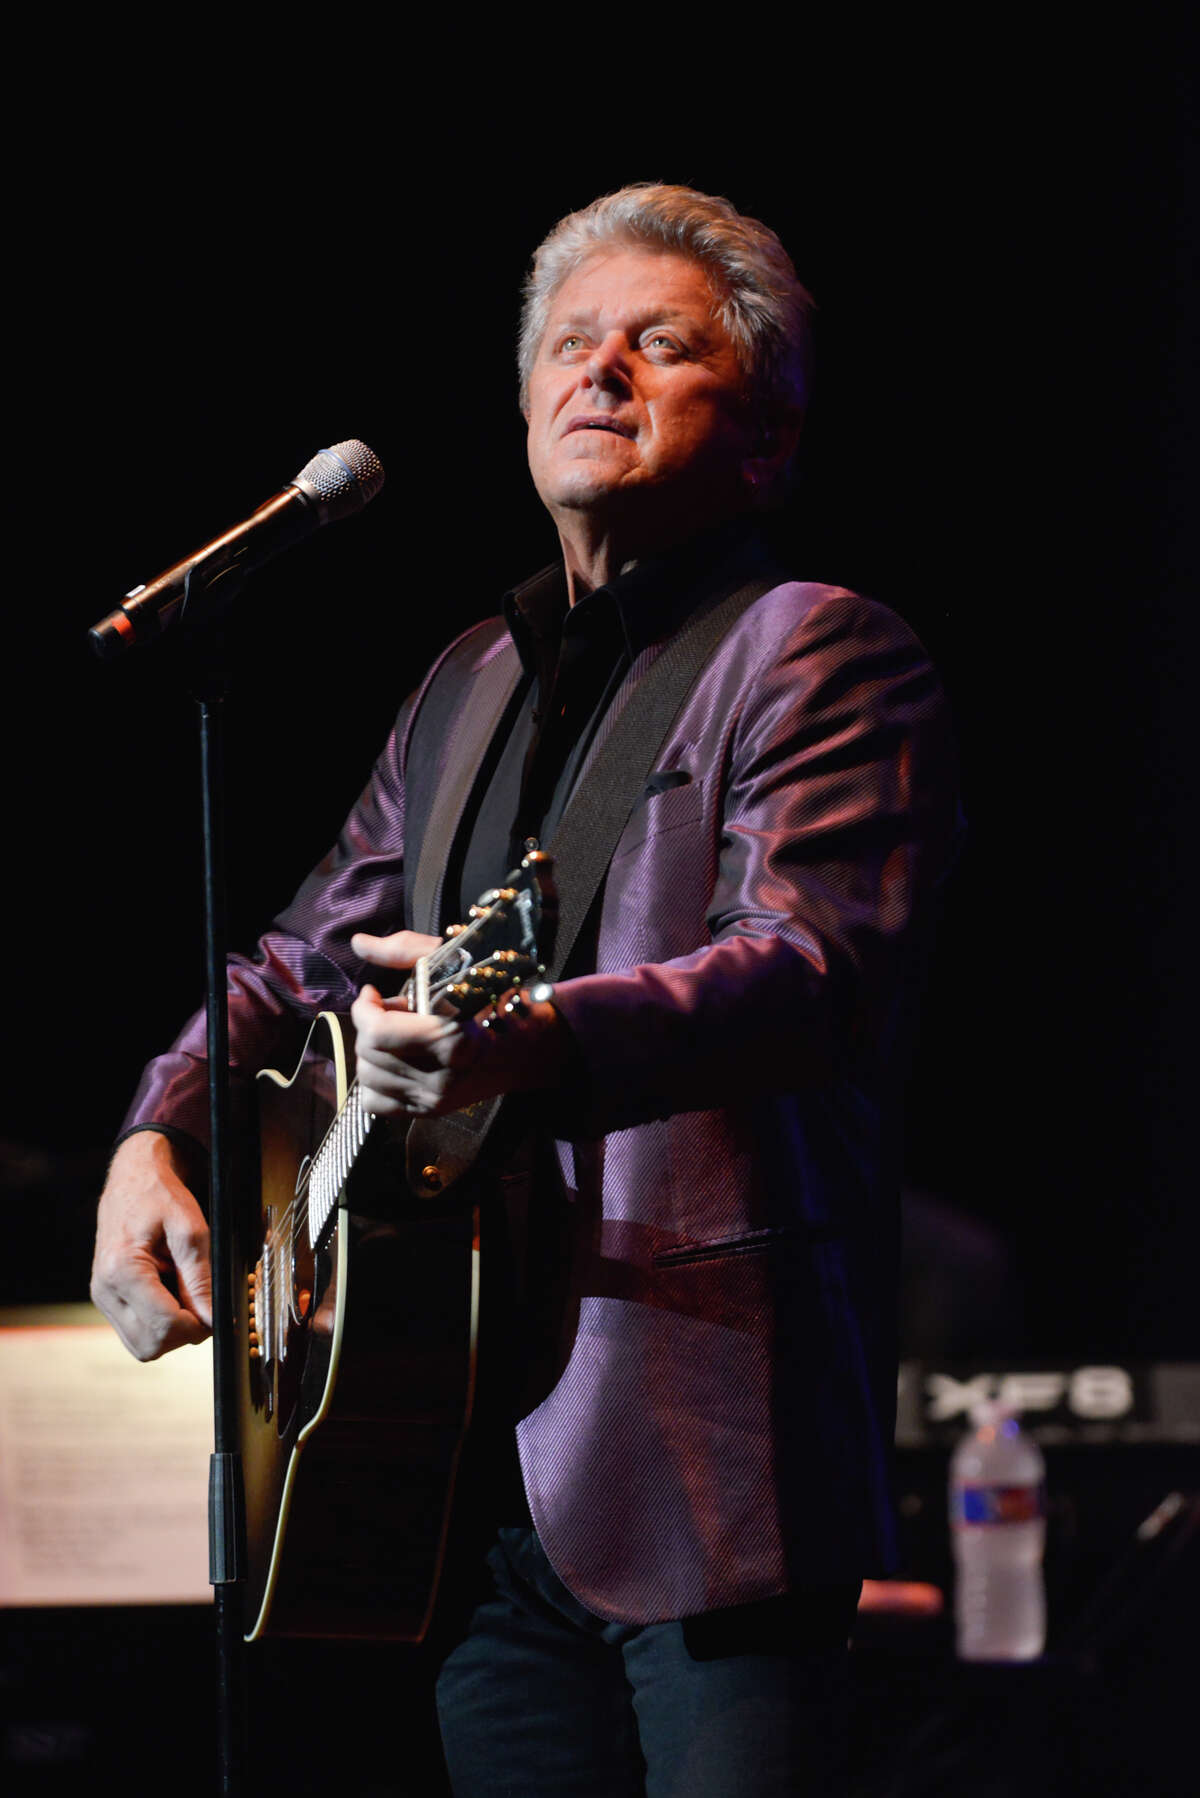 Grammy Award-winning singer/songwriter Peter Cetera delivered his timeless music at the Majestic Theatre on Thursday. Joined on stage by Bad Daddys, Cetera performed such hits as